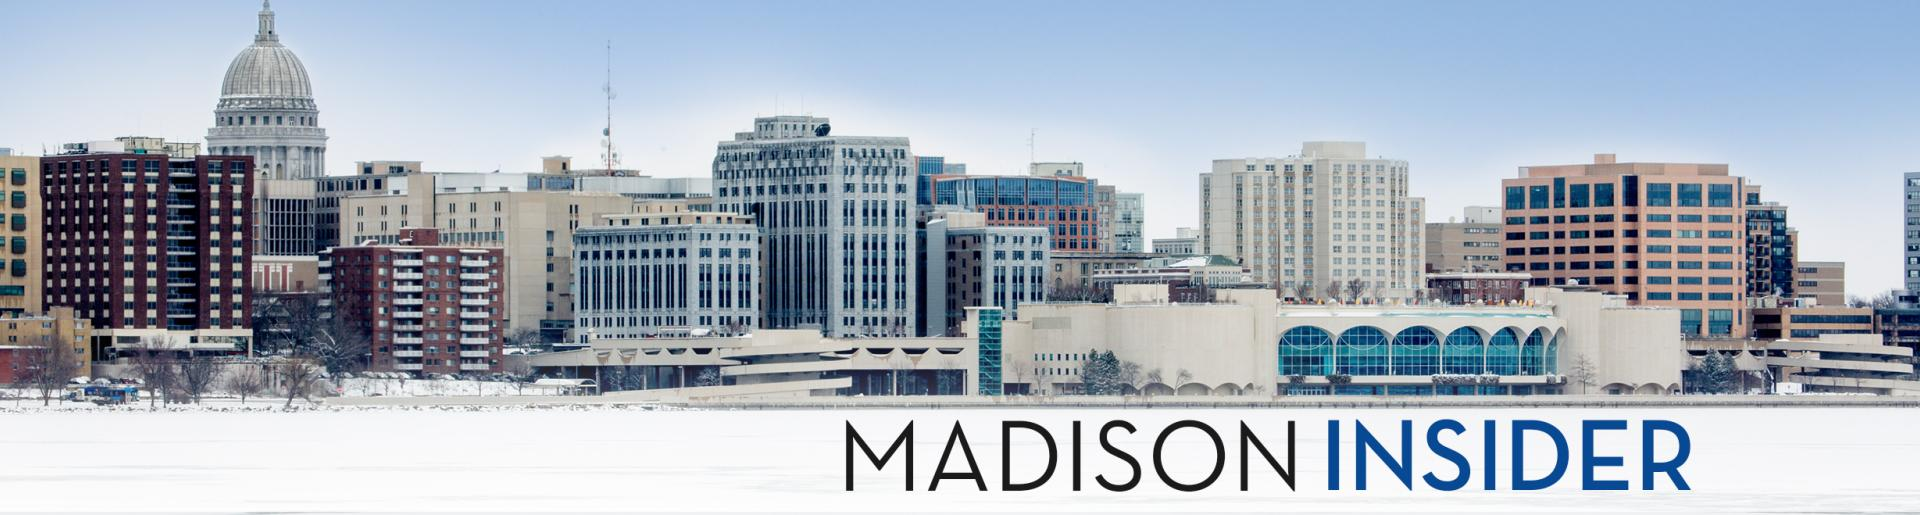 Madison Insider - Winter!